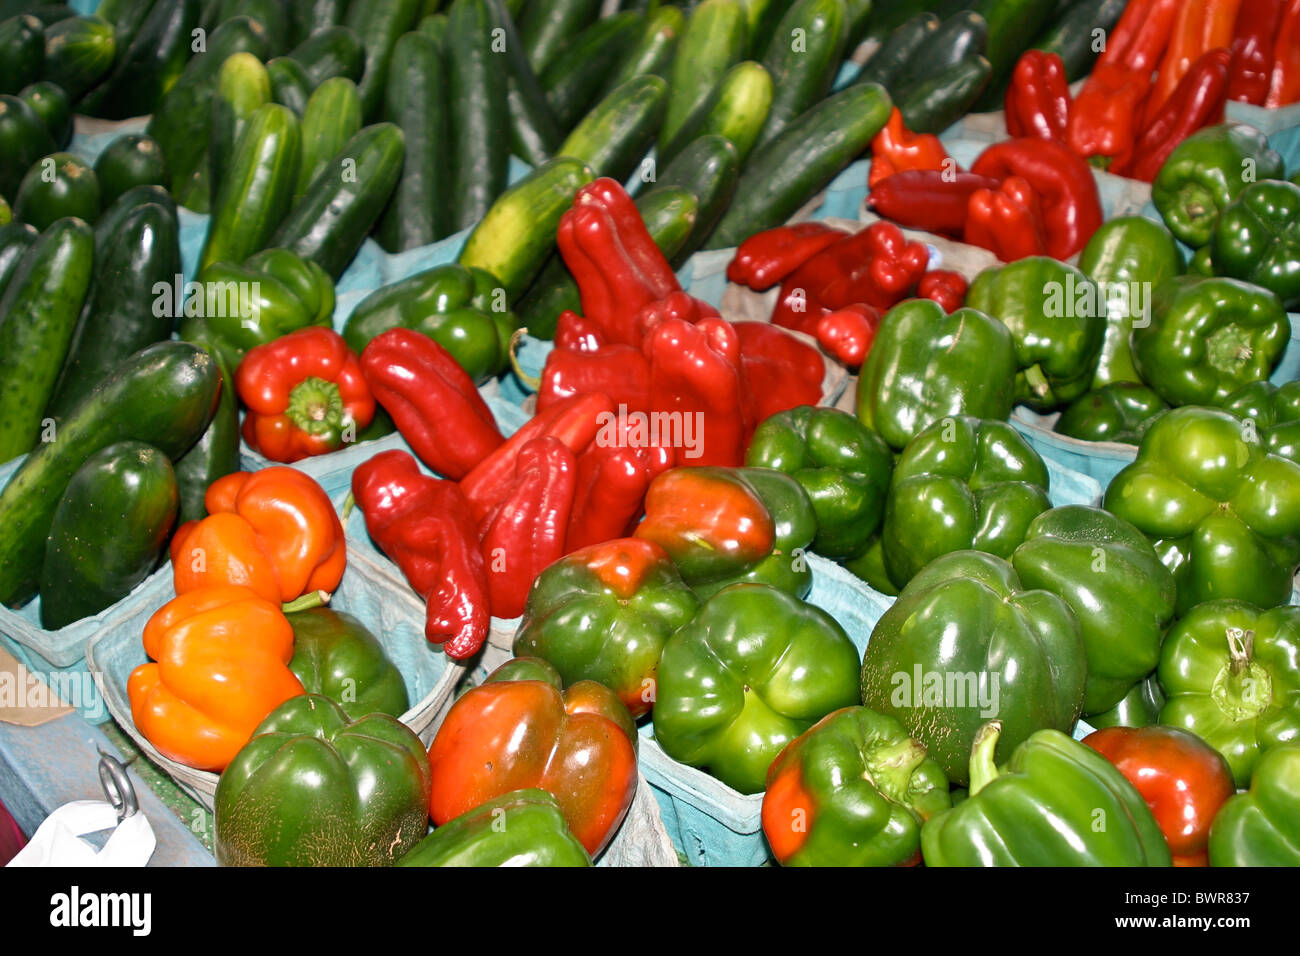 c fresh, green, ingredients, local, localvore, market, organic, peppers, s on display at roadside stand on Interstate Stock Photo